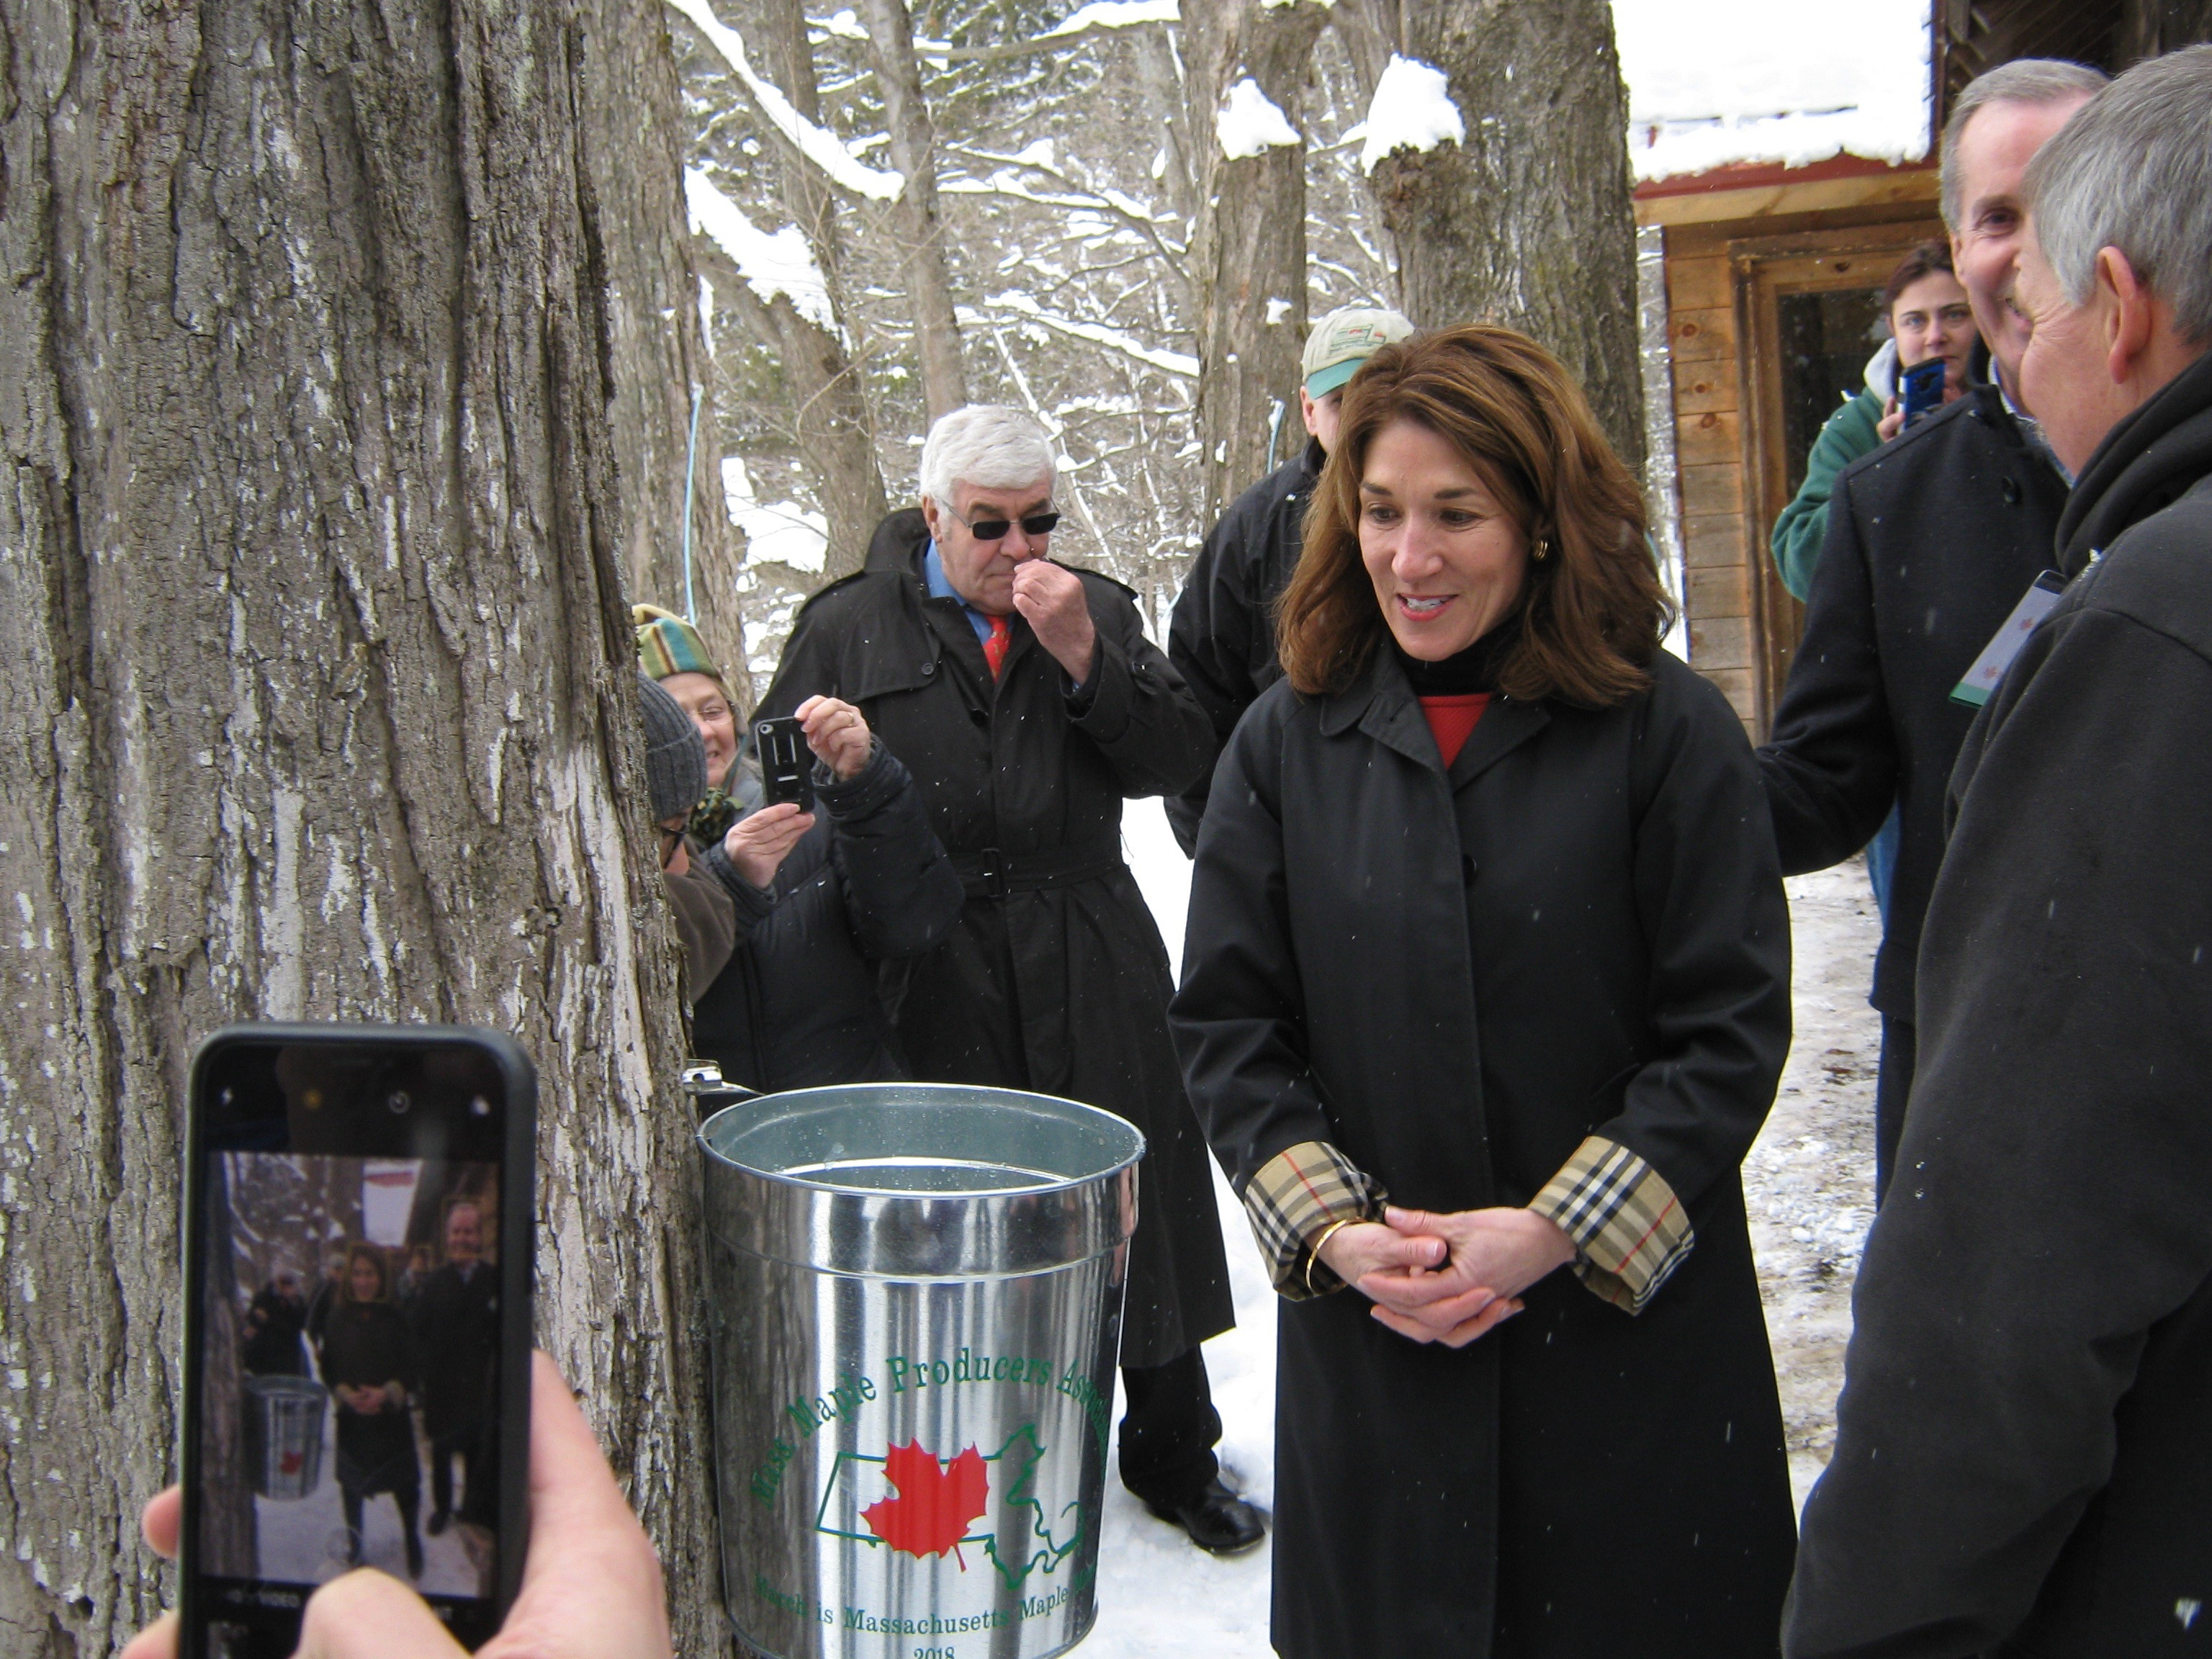 2018 Maple Sugaring Season Underway & Massachusetts Proclaims March as Maple Month in the Bay State